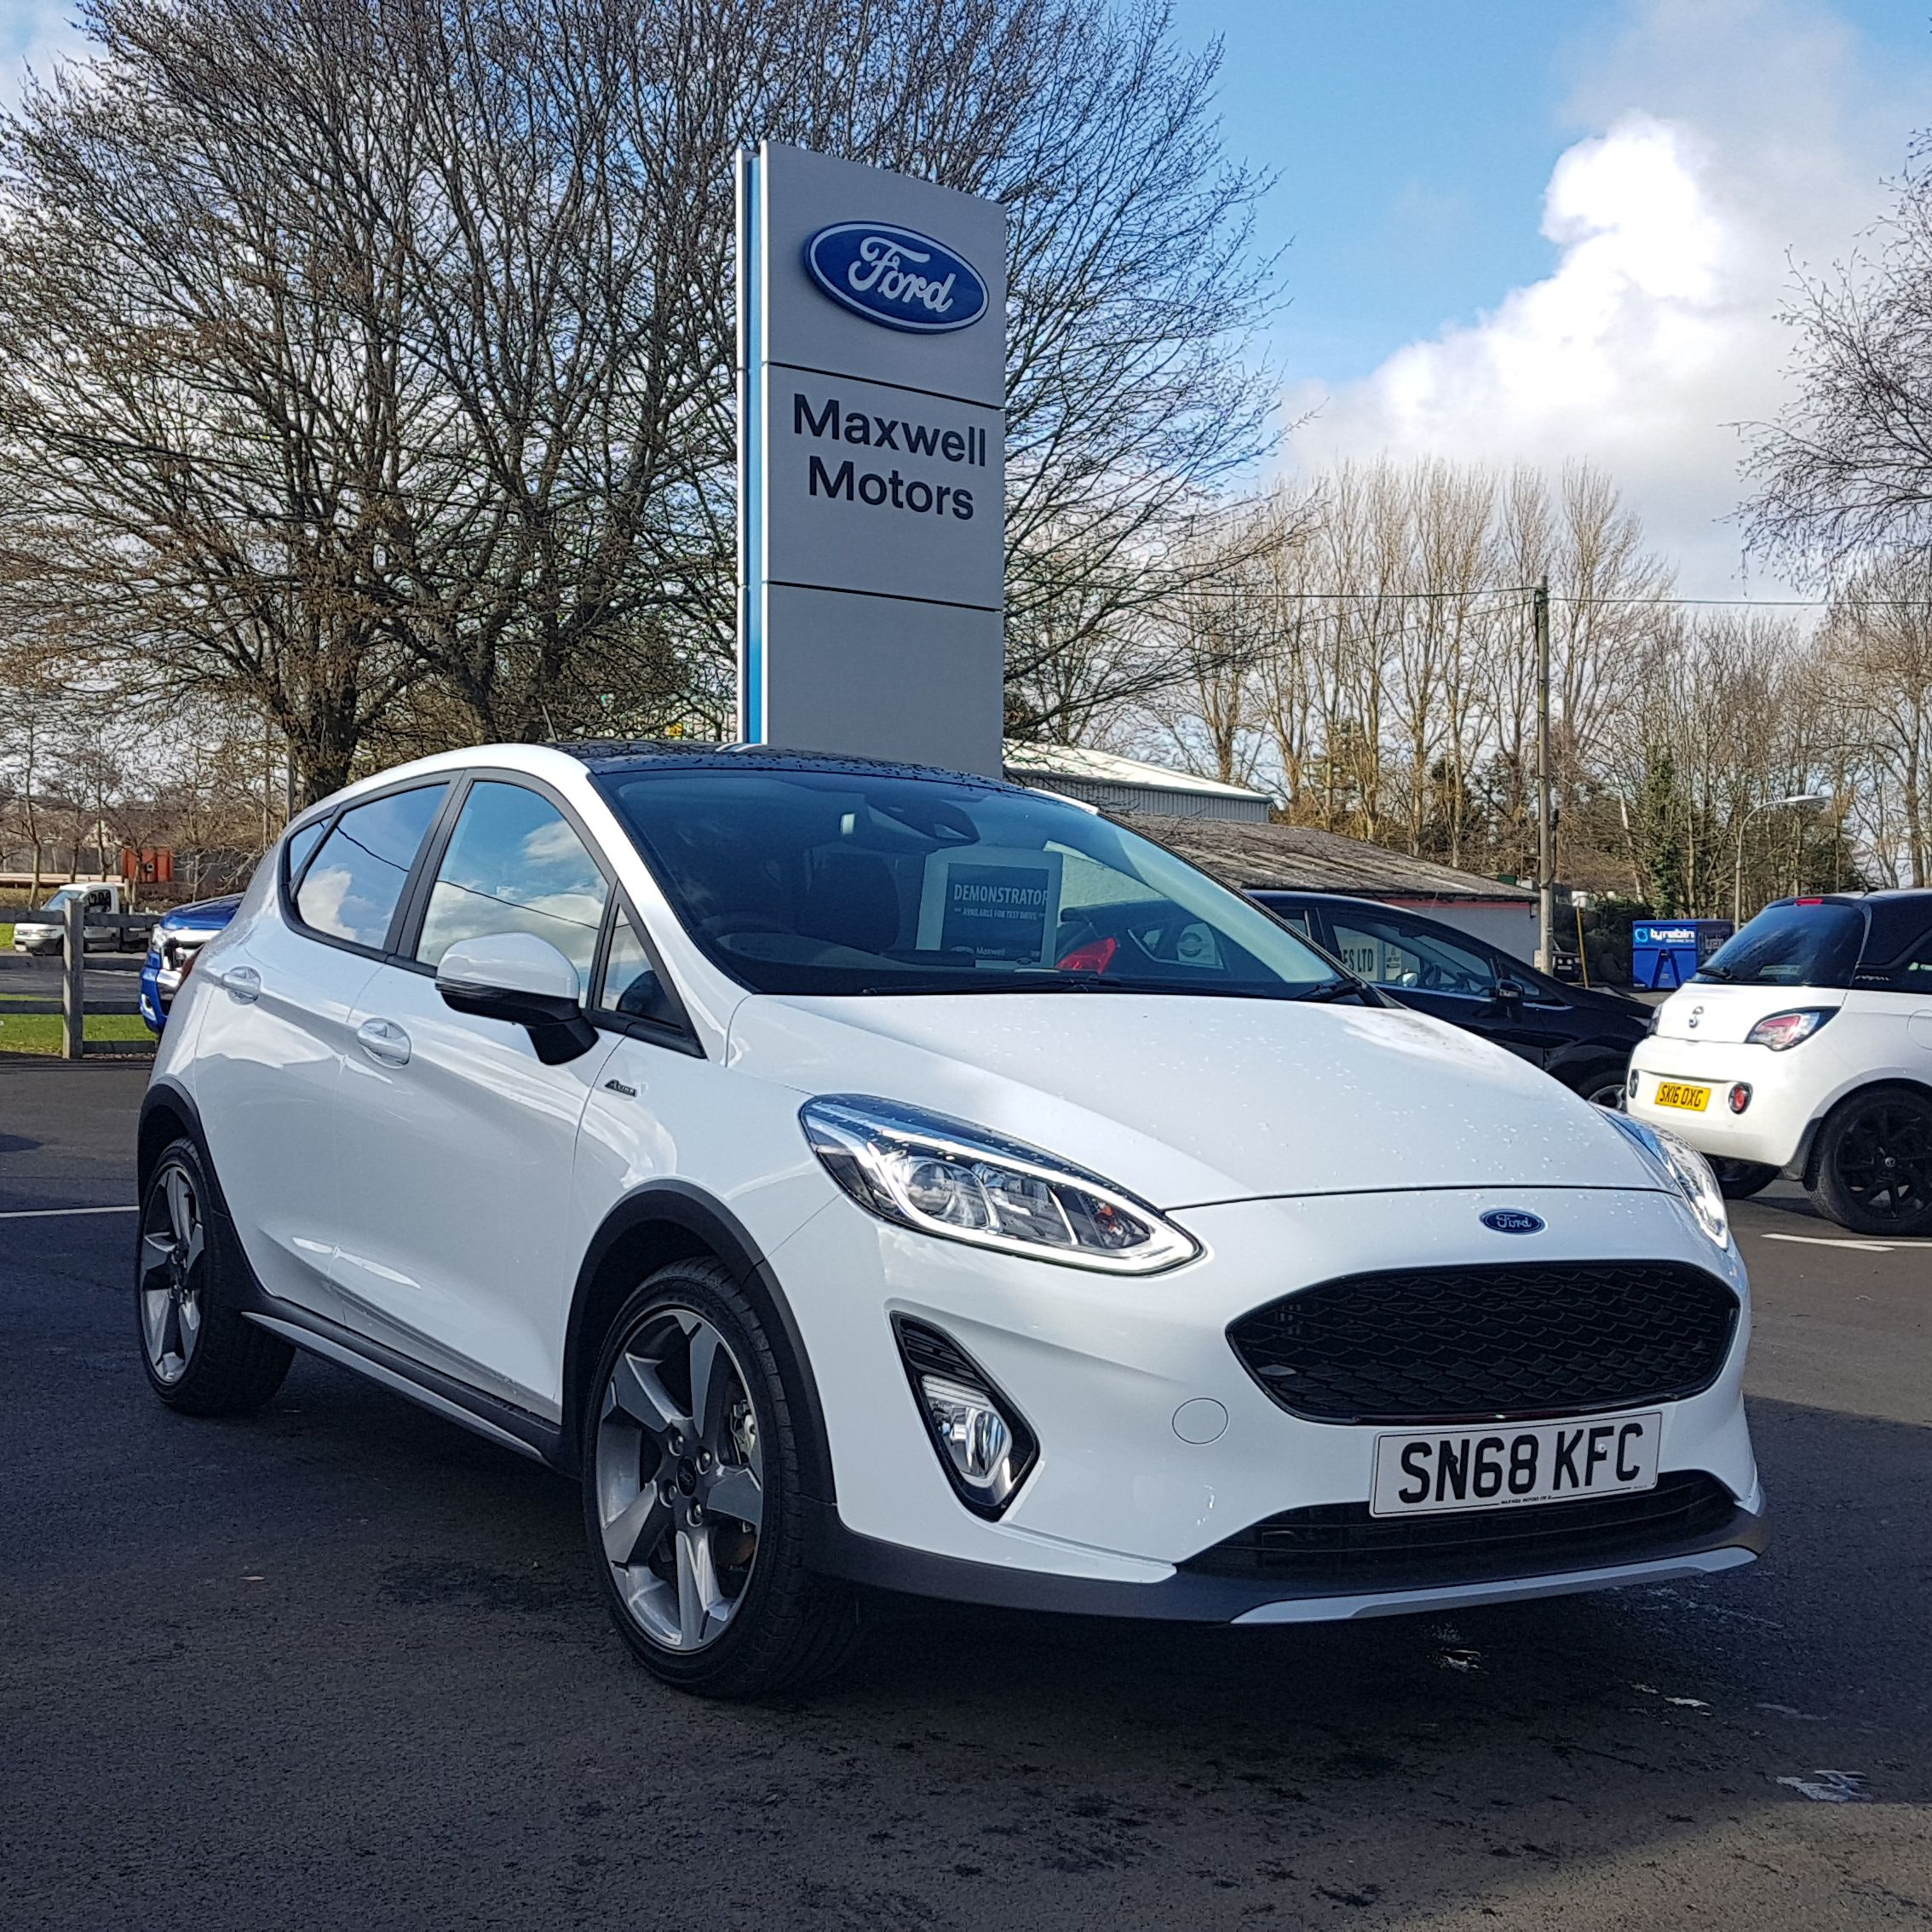 FORD FIESTA ACTIVE X 1.0 ECOBOOST 140PS